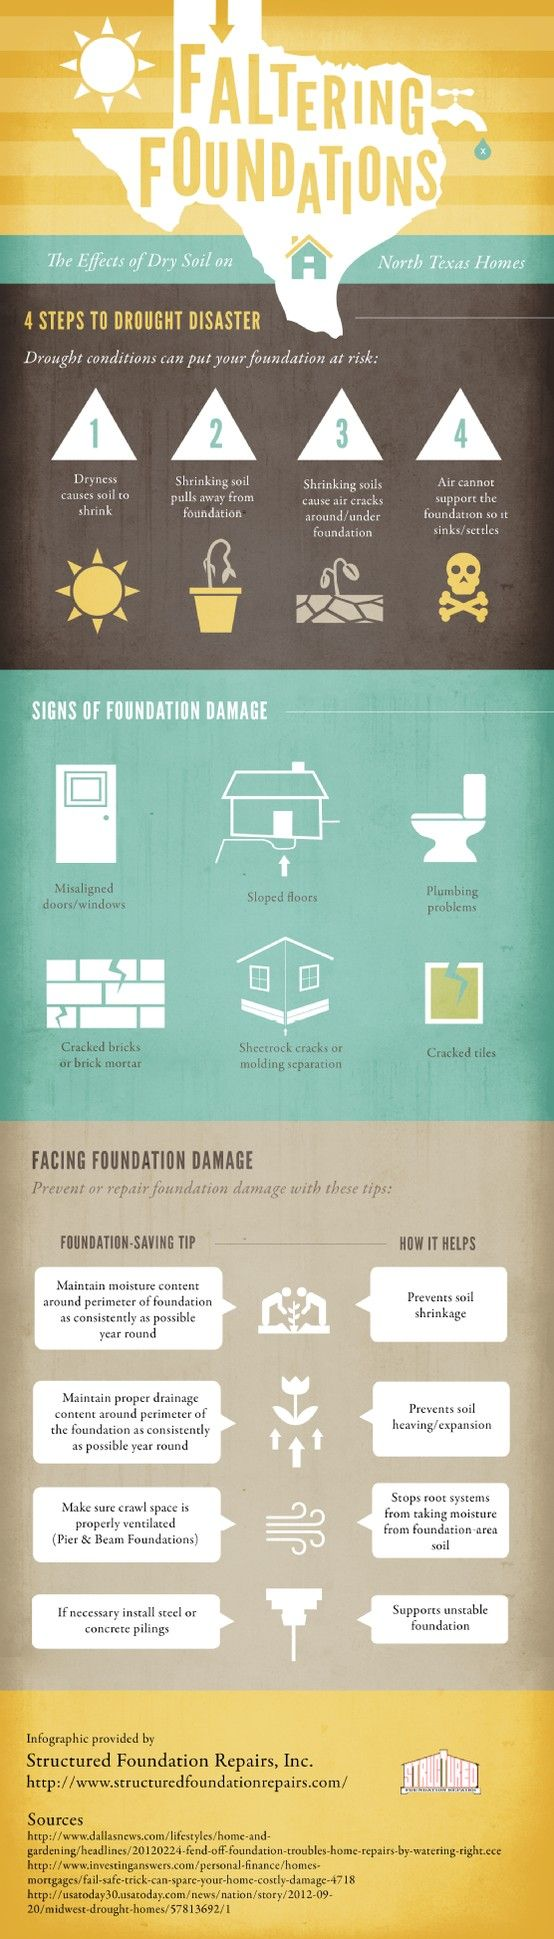 If not properly maintained, your home's drainage content could affect the foundation, which puts the entire structure at risk. This infographic from Structured Foundation Repairs, Inc. shows you how to spot and repair foundation issues before they become big problems. Source: http://www.structuredfoundationrepairs.com/677919/2013/04/09/faltering-foundations-the-effects-of-dry-soil-on-north-texas-homes-infographic.html